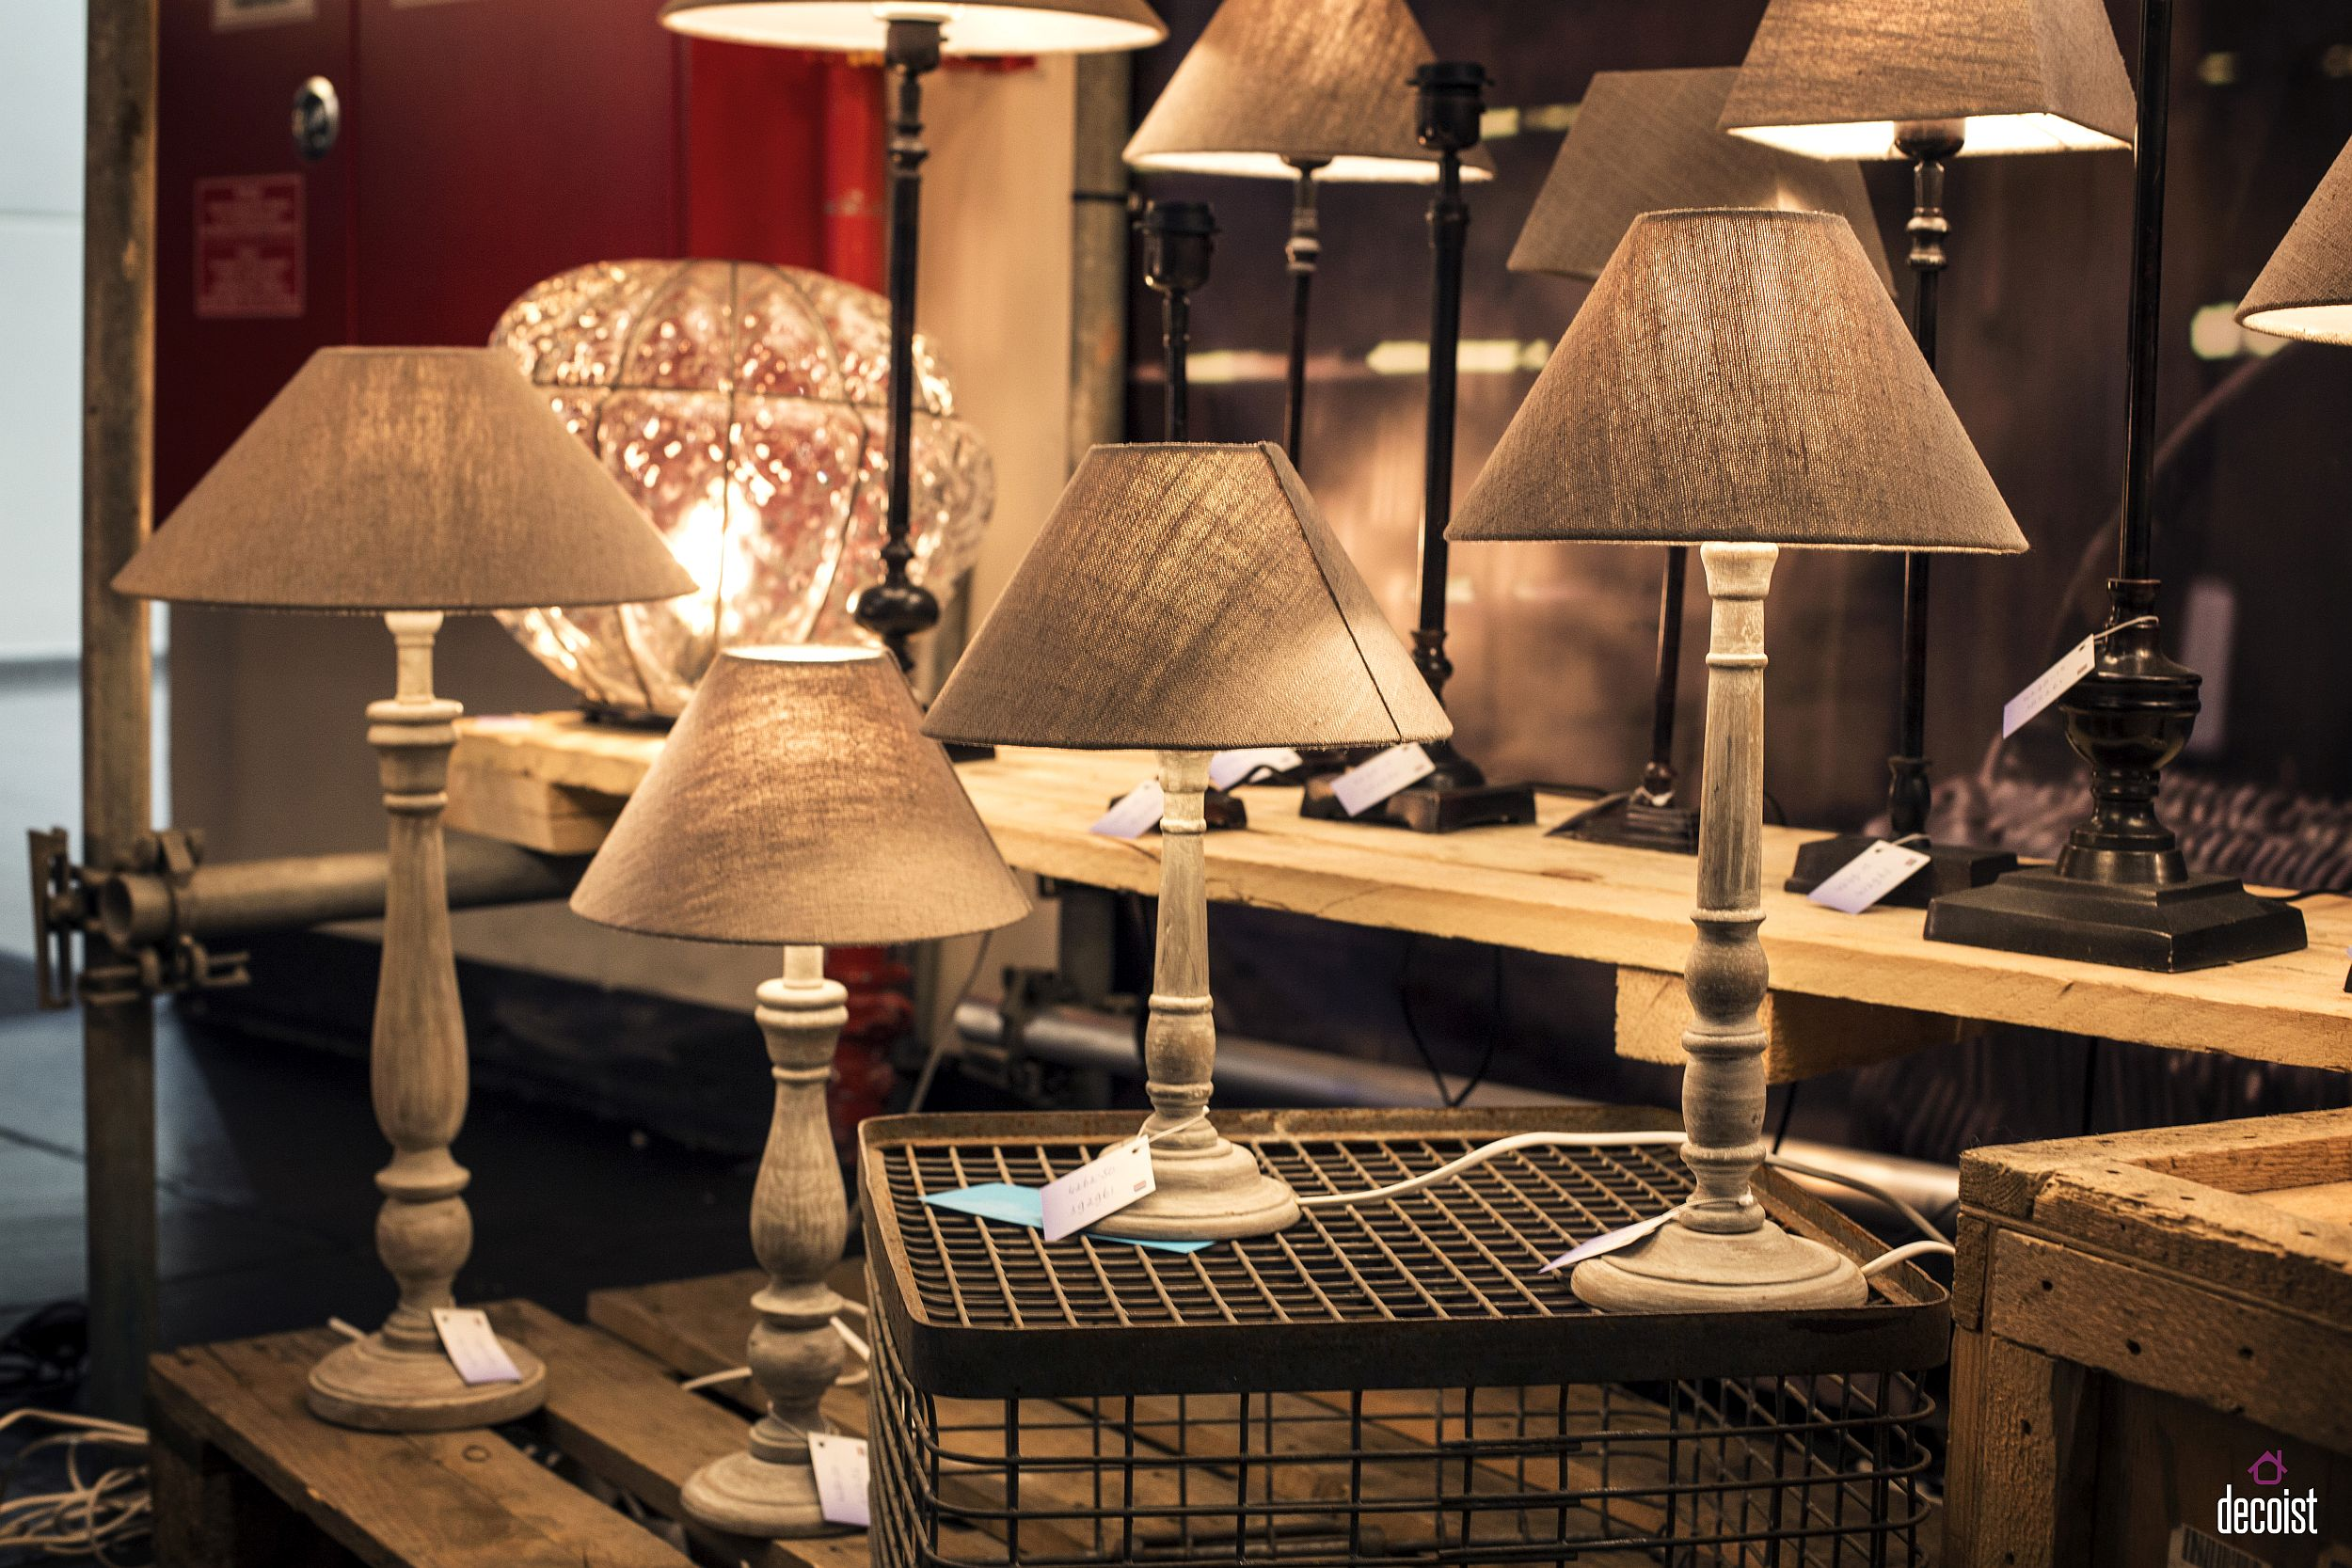 Innovative table lamps and bedside lighting from Masterlight